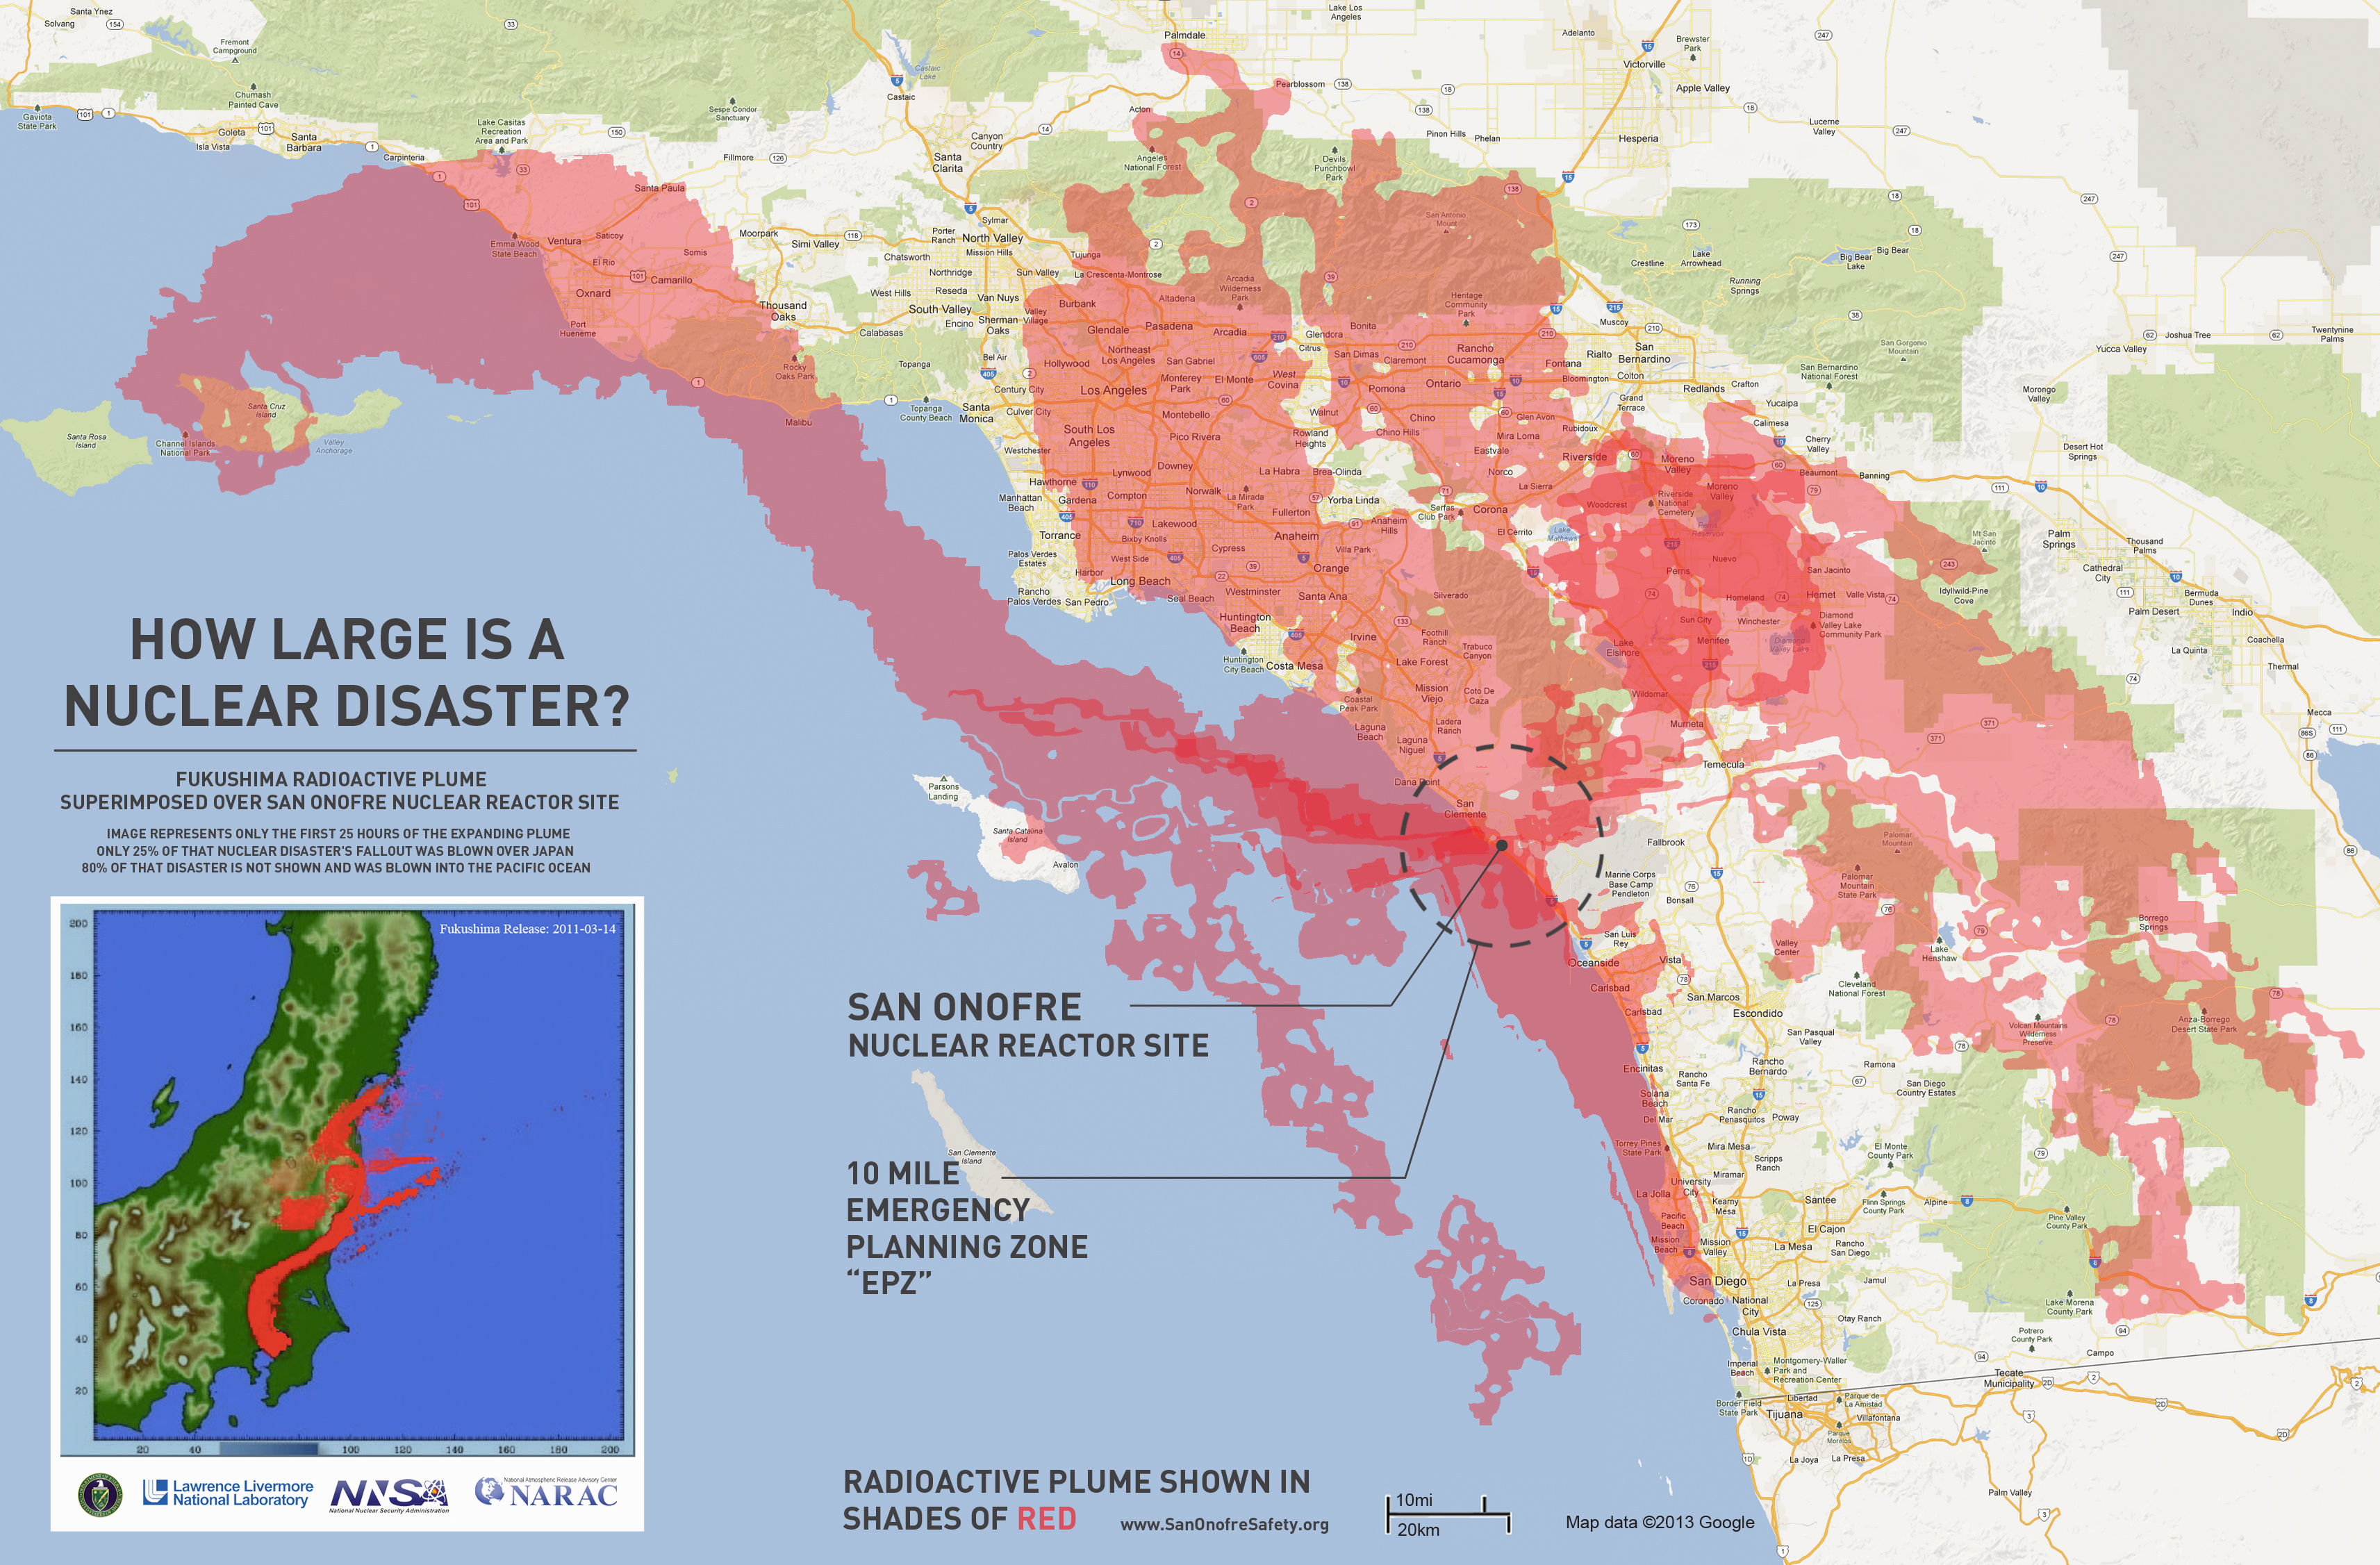 Us Nuclear Plant Melt California Map With Cities Nuclear Reactors In - Nuclear Power Plants In California Map